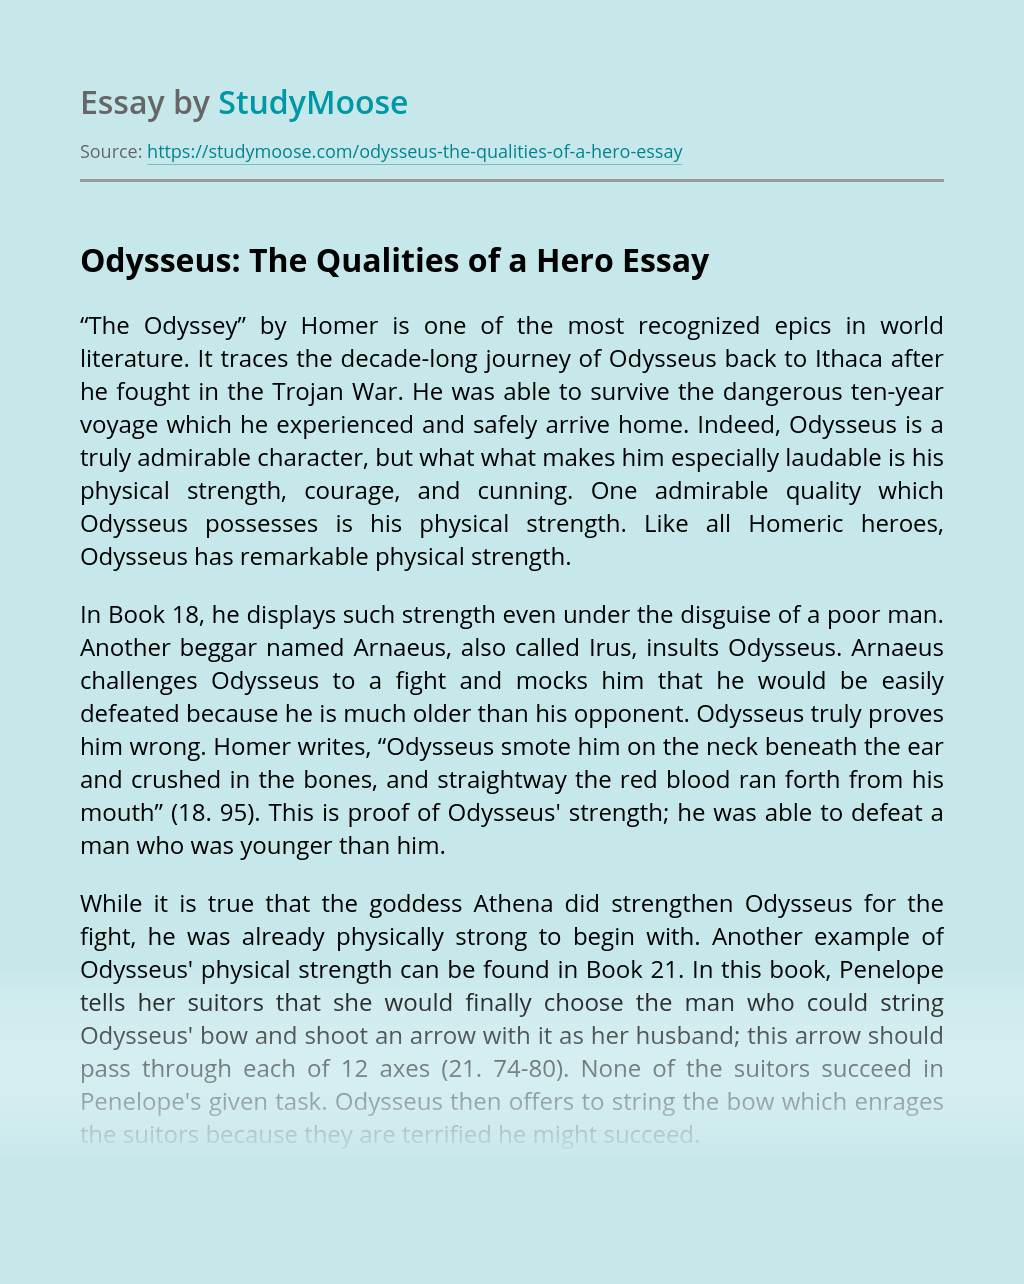 Odysseus: The Qualities of a Hero